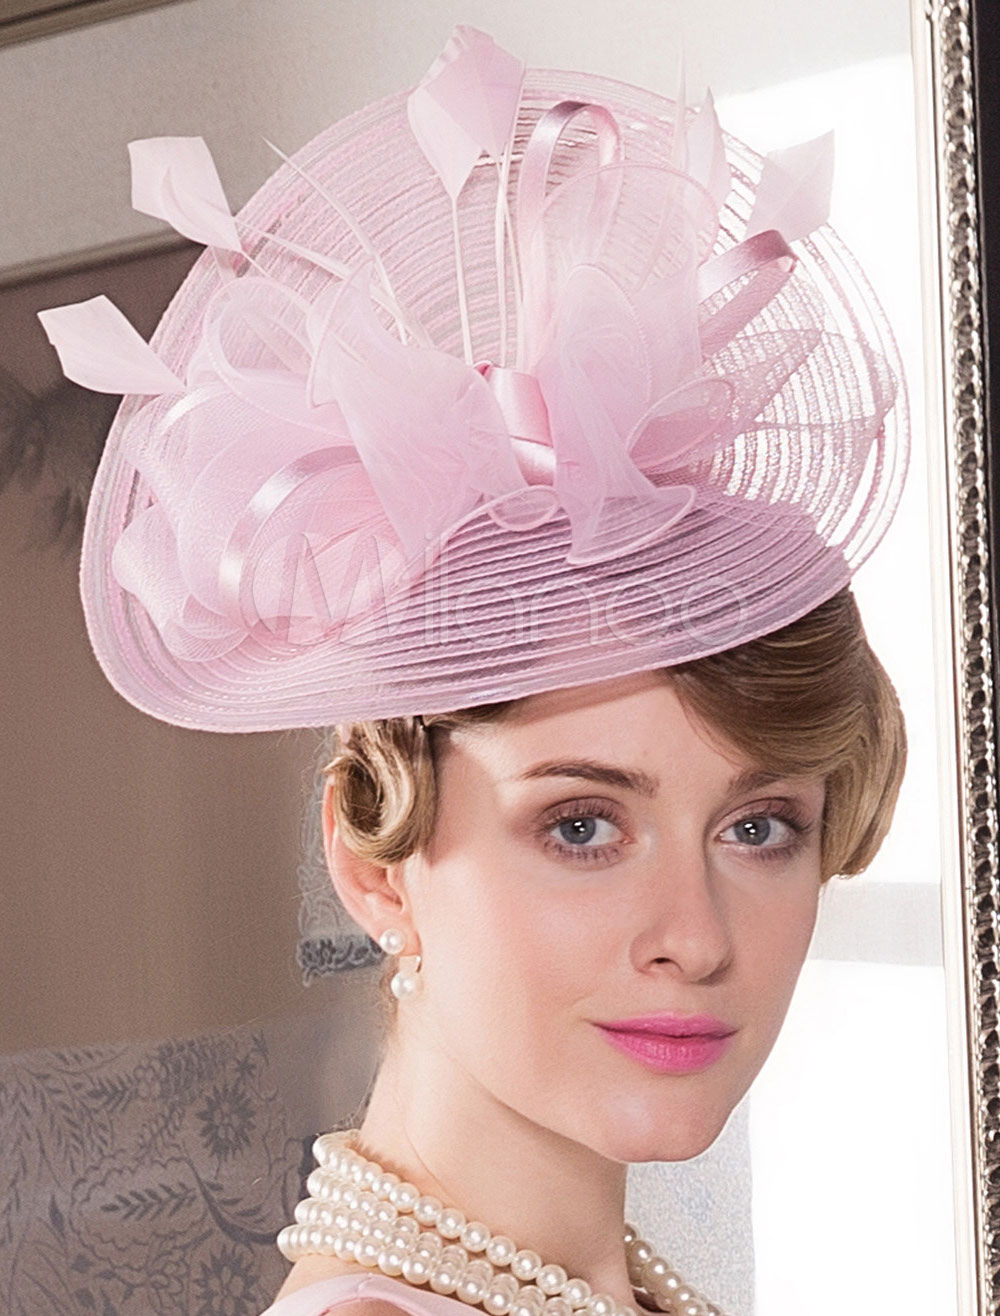 Buy Pink Vintage Hat Women's Bow Feather Retro Costume Hair Accessories Halloween for $26.99 in Milanoo store